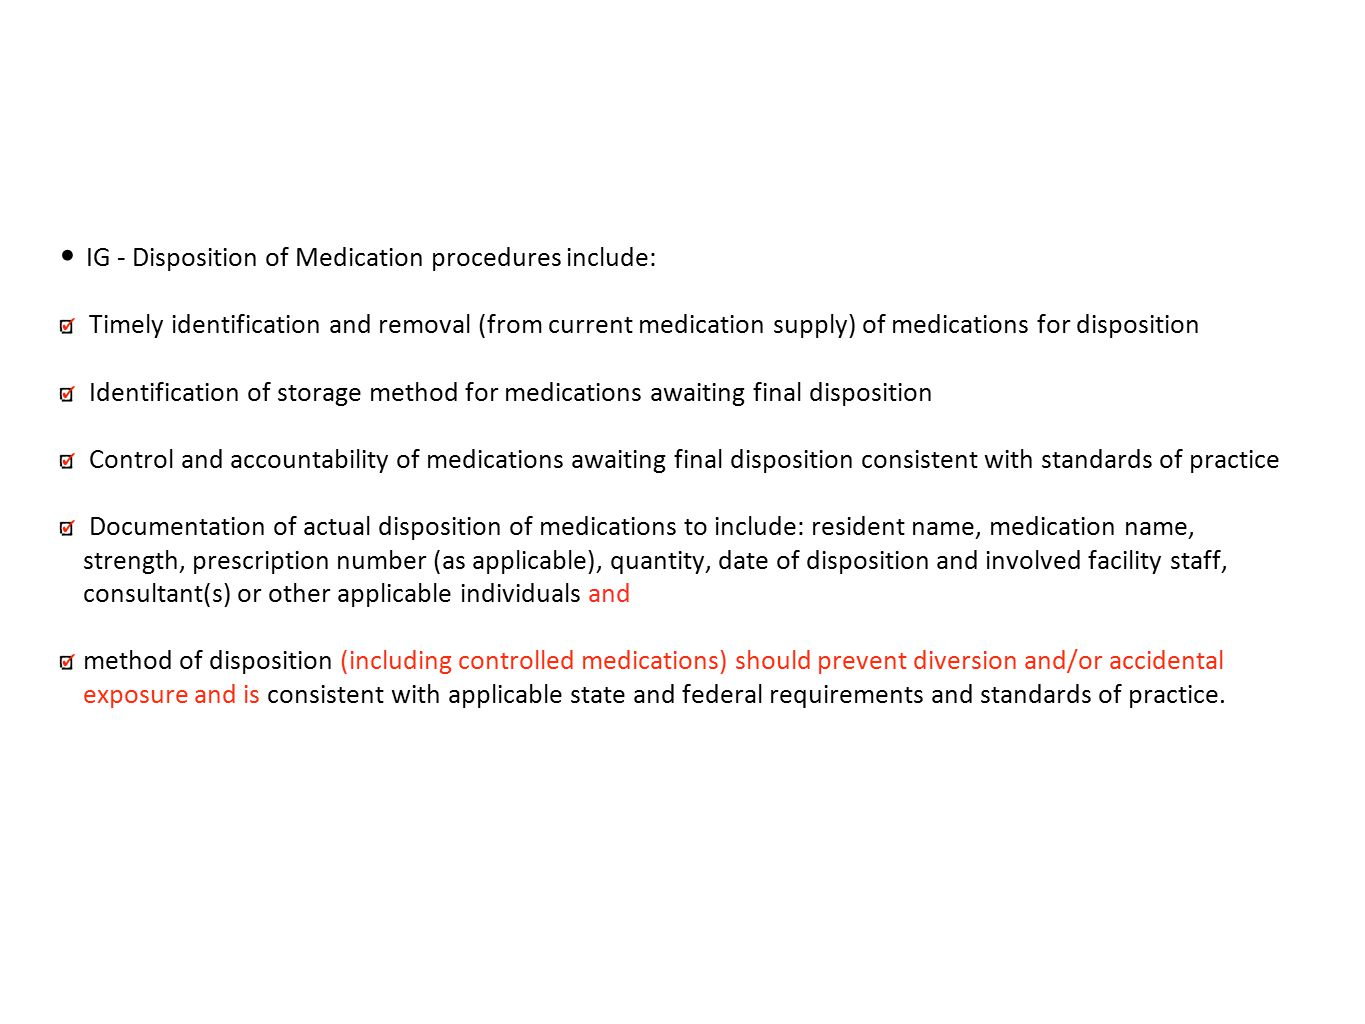 IG - Disposition of Medication procedures include: